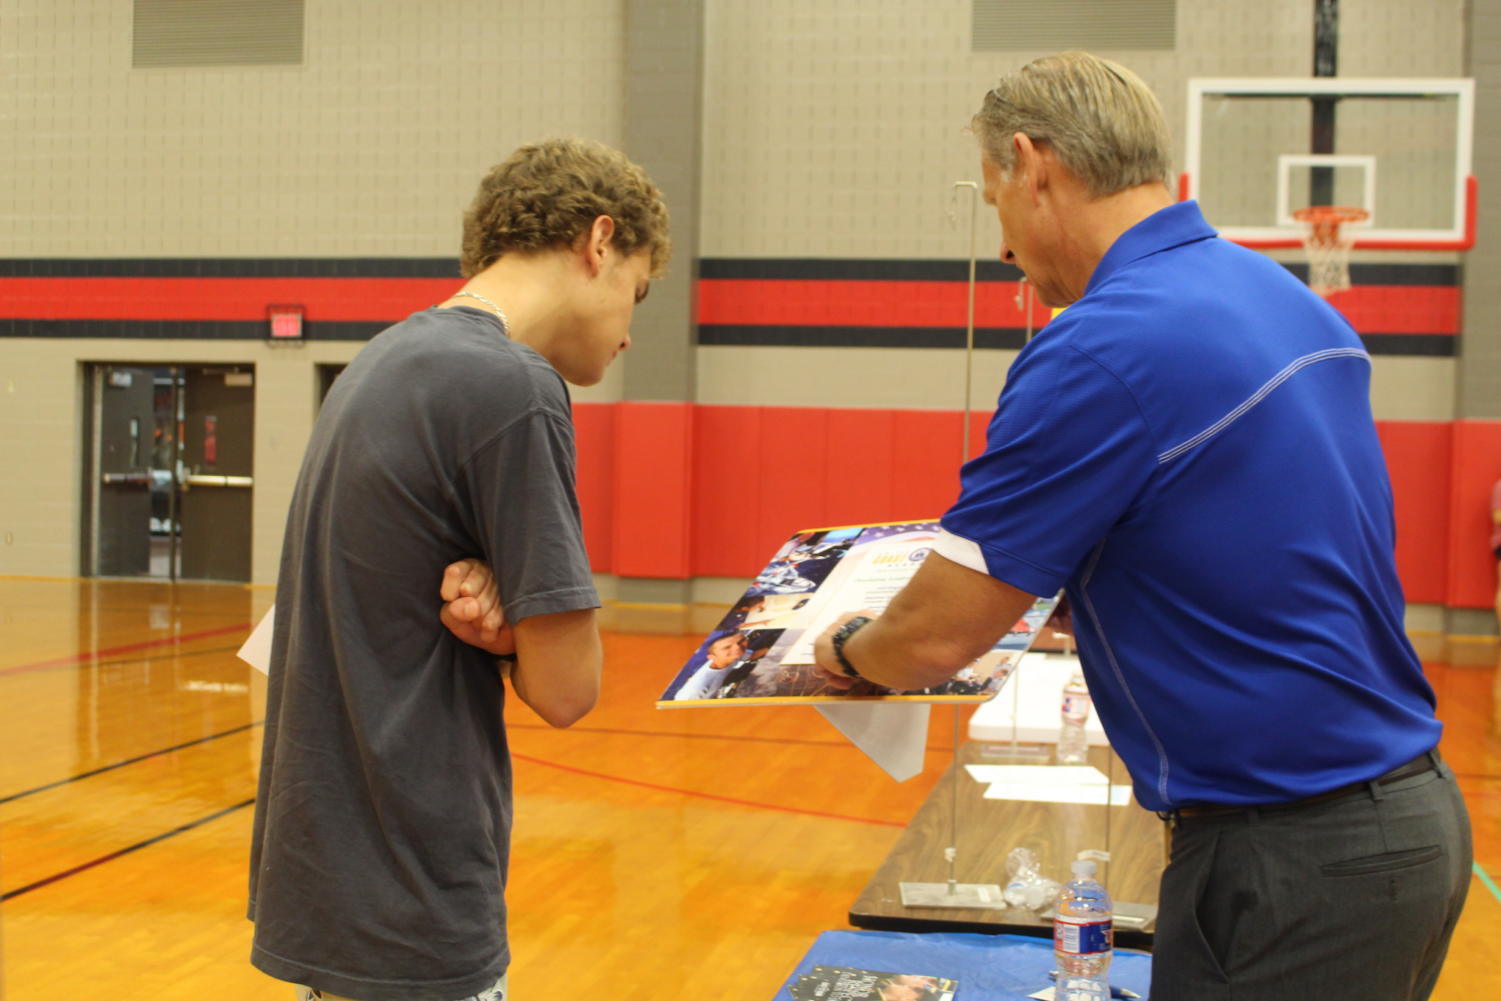 Coppell High School junior Johan Pretorius listens to Jason Oswald from the United States Coast Guard about the requirements and opportunities he can earn from this program. Oswald uses a pamphlet to explain these details.